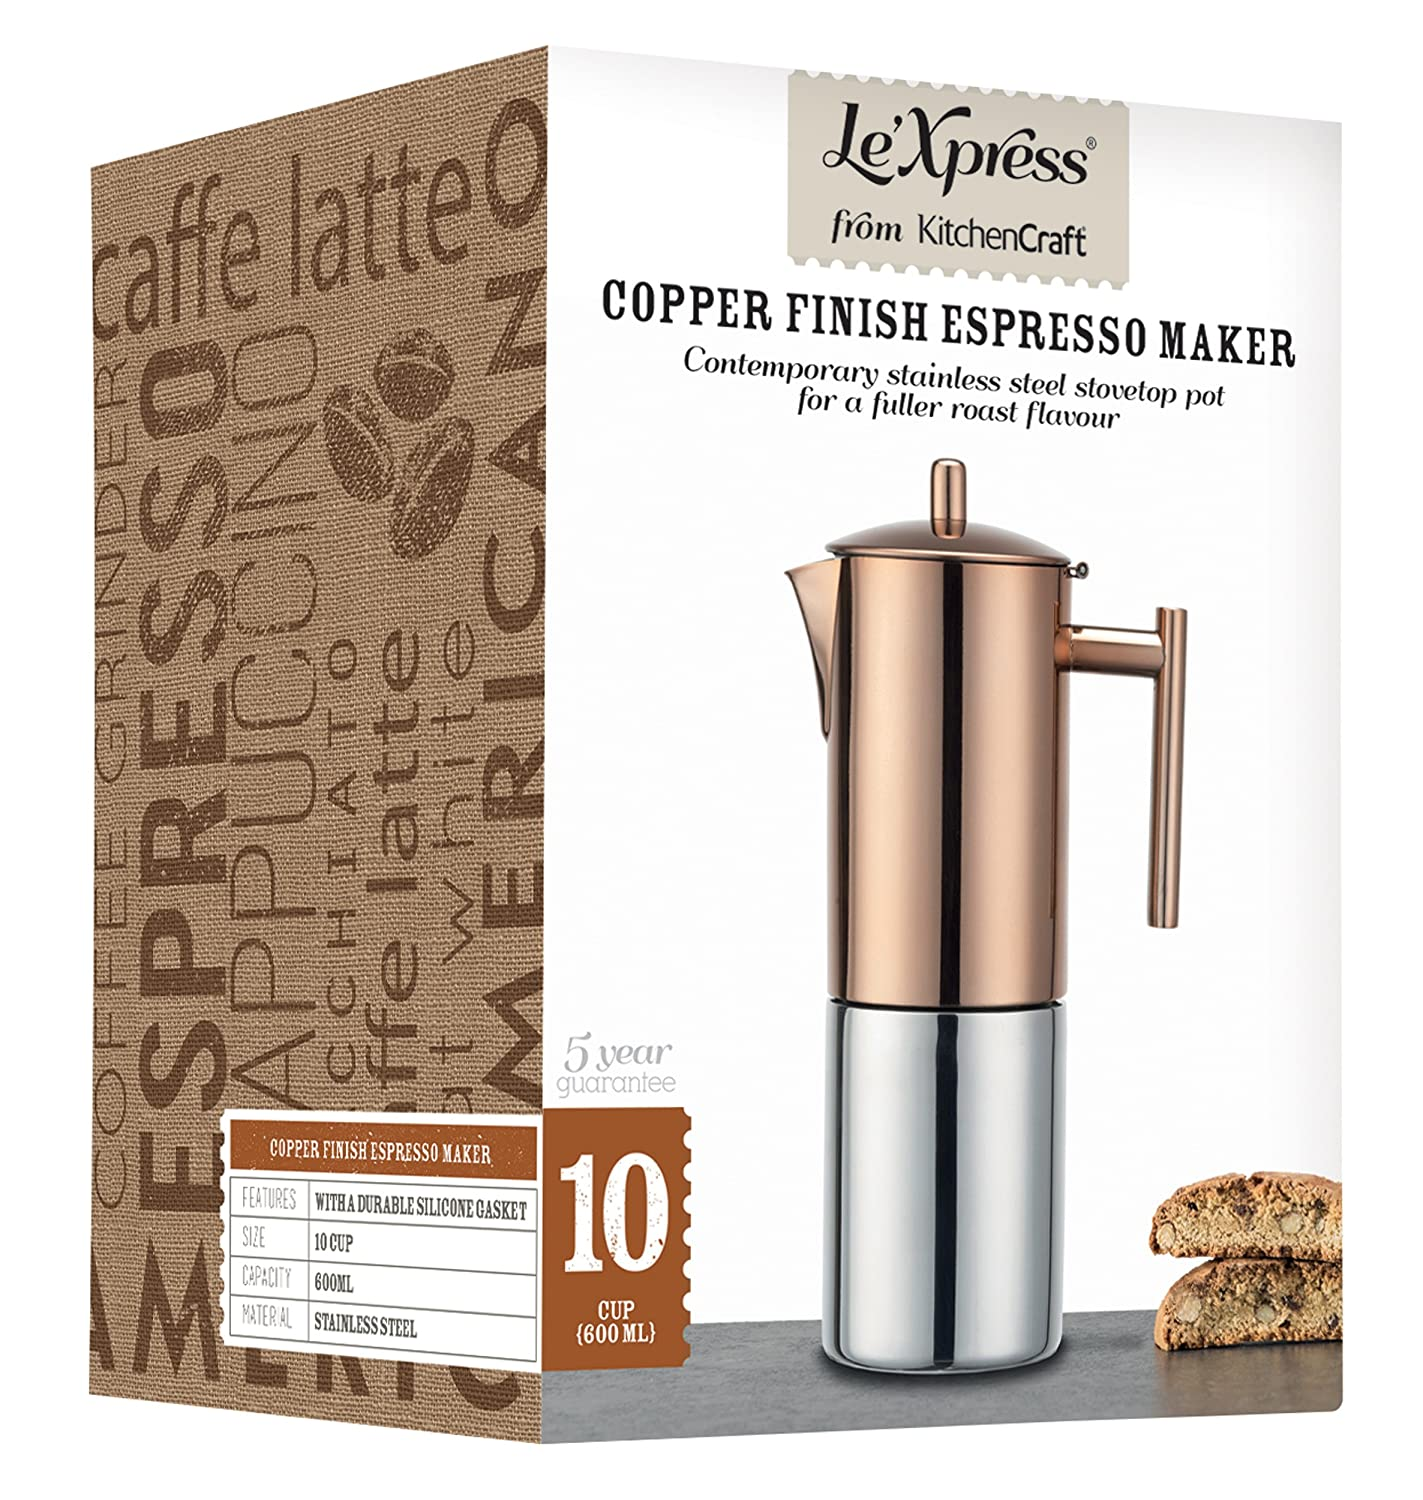 Stainless steel stovetop espresso maker 10 cup - Kitchencraft Le Xpress 10 Cup Stovetop Espresso Maker 600 Ml Copper Finish Amazon Co Uk Kitchen Home